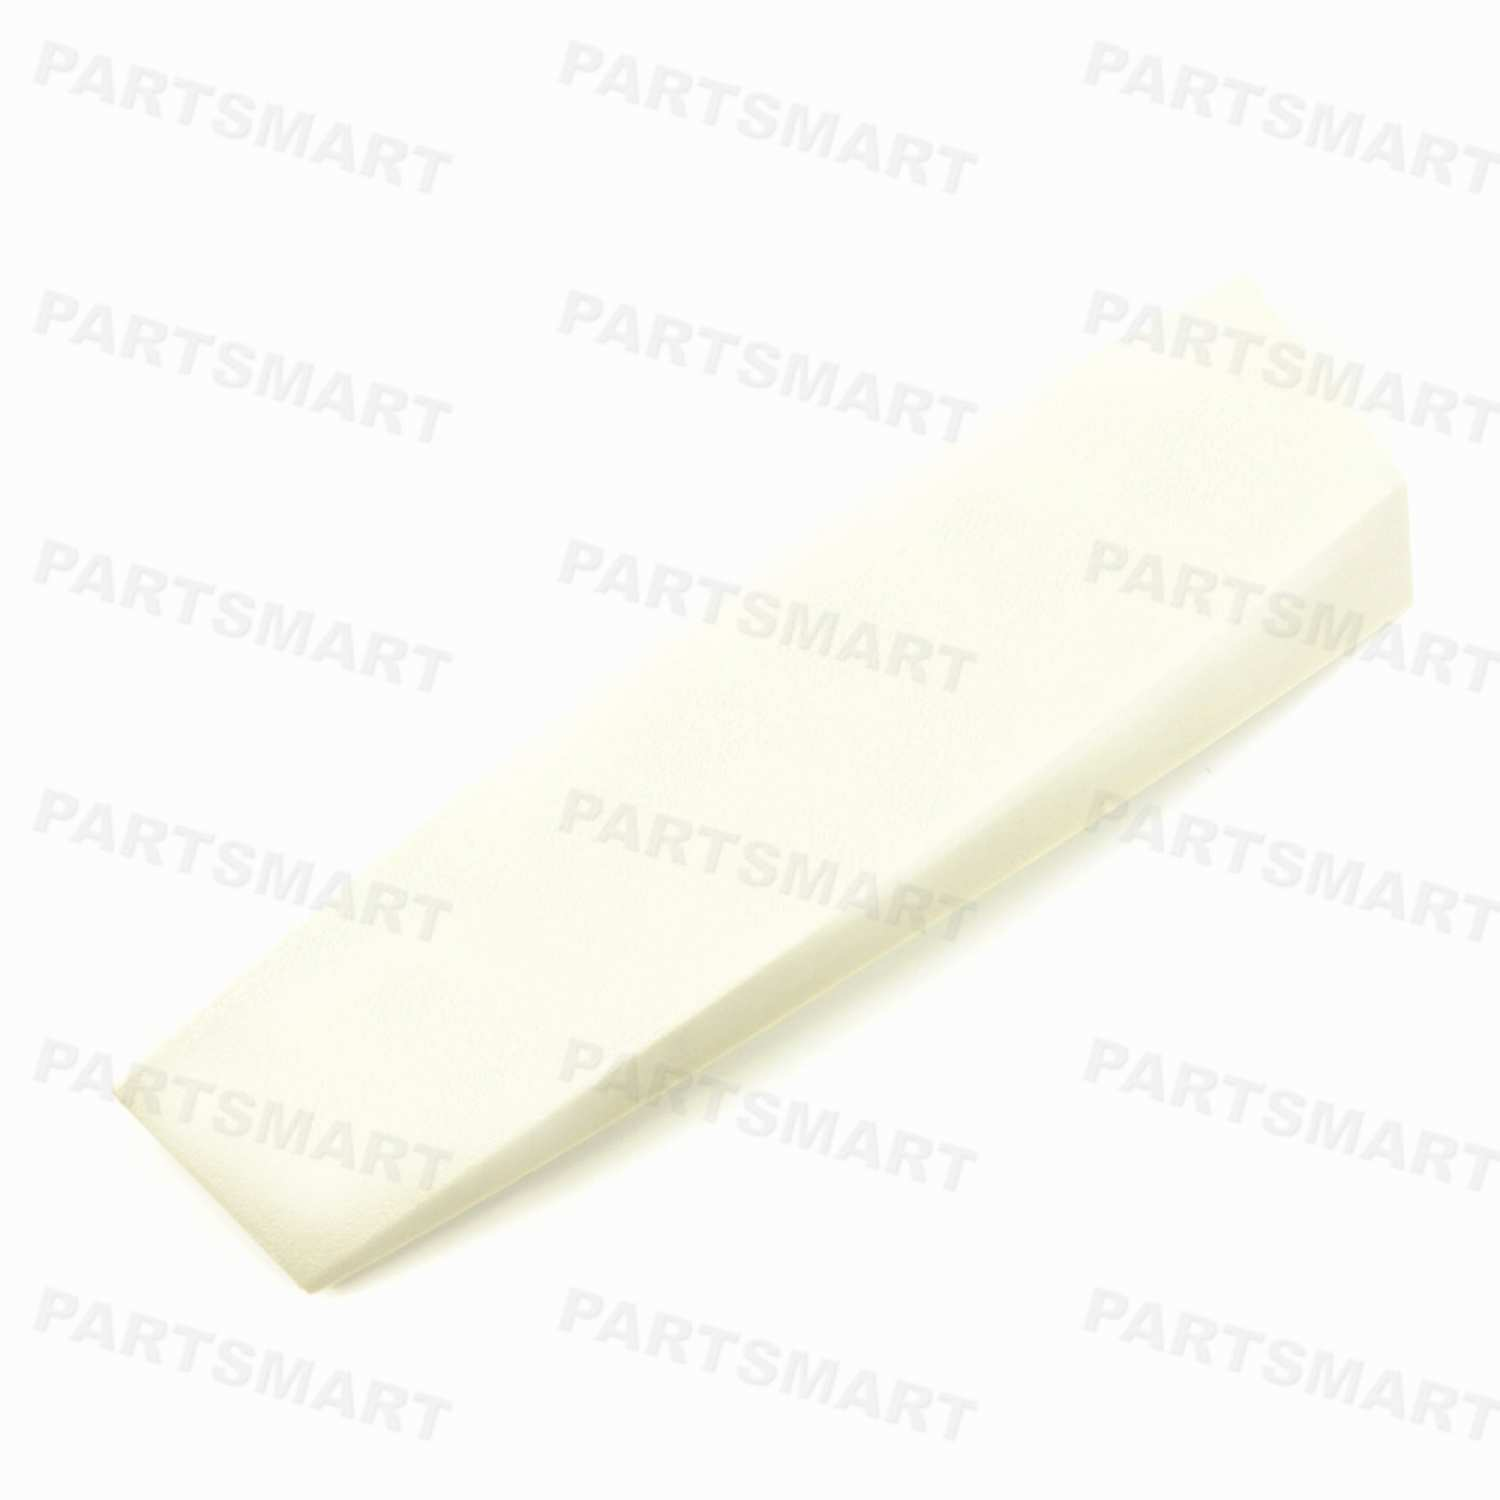 99A1512 Cover Ass'y, Redrive Cap for Lexmark Optra T